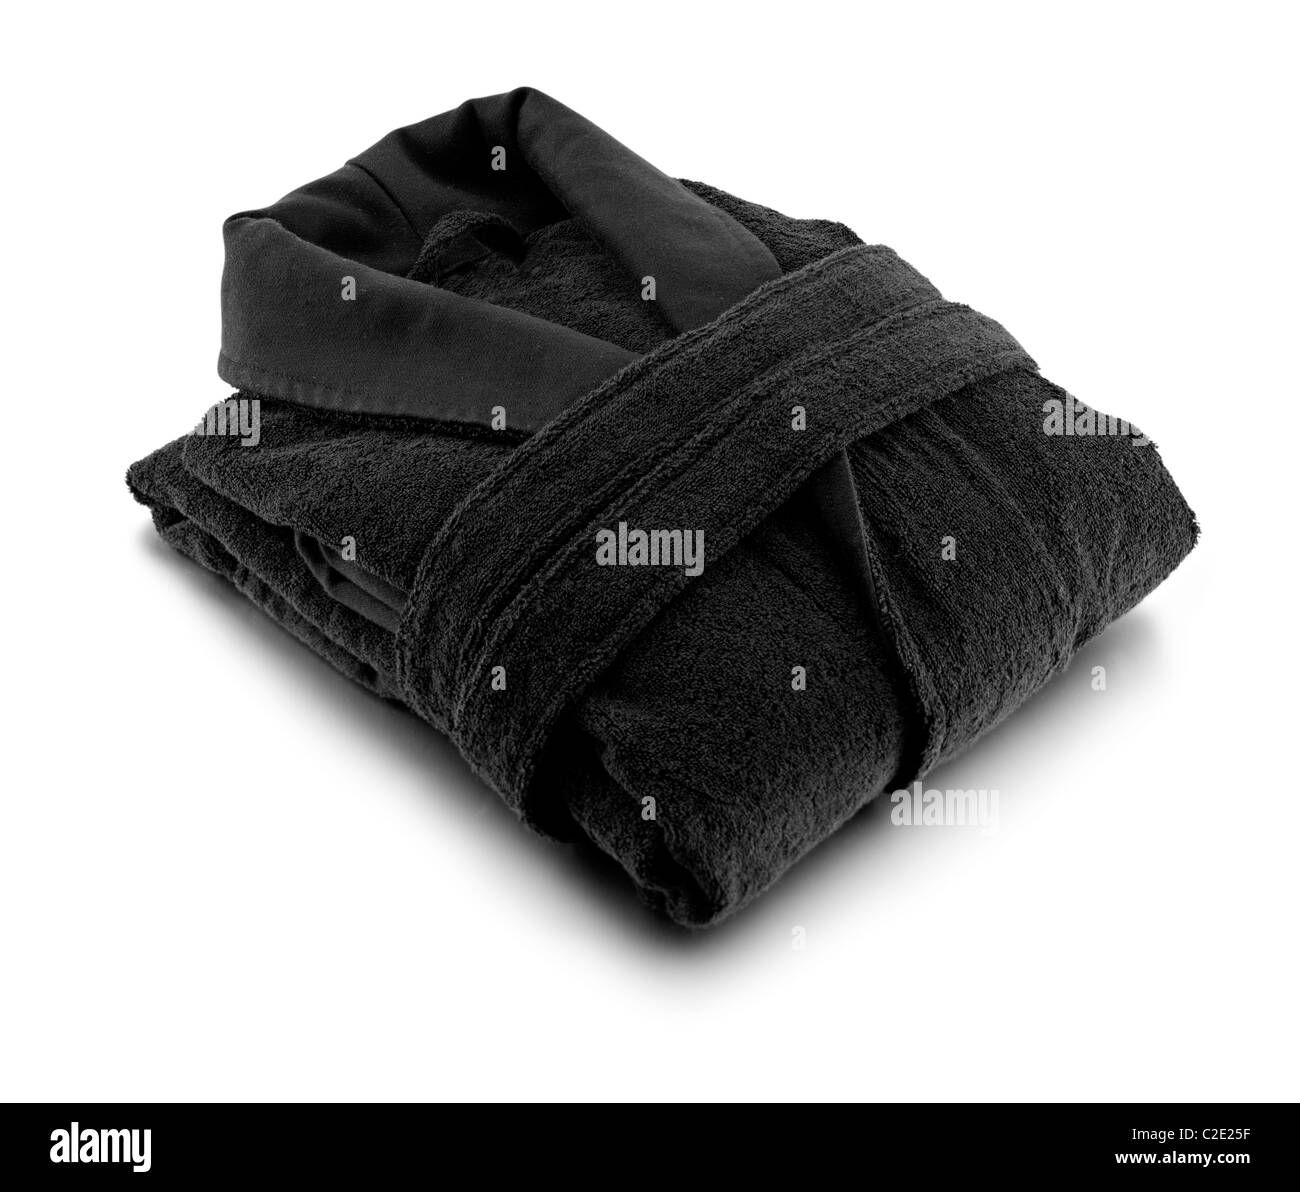 Robe im genes de stock robe fotos de stock alamy - Toalla albornoz ...